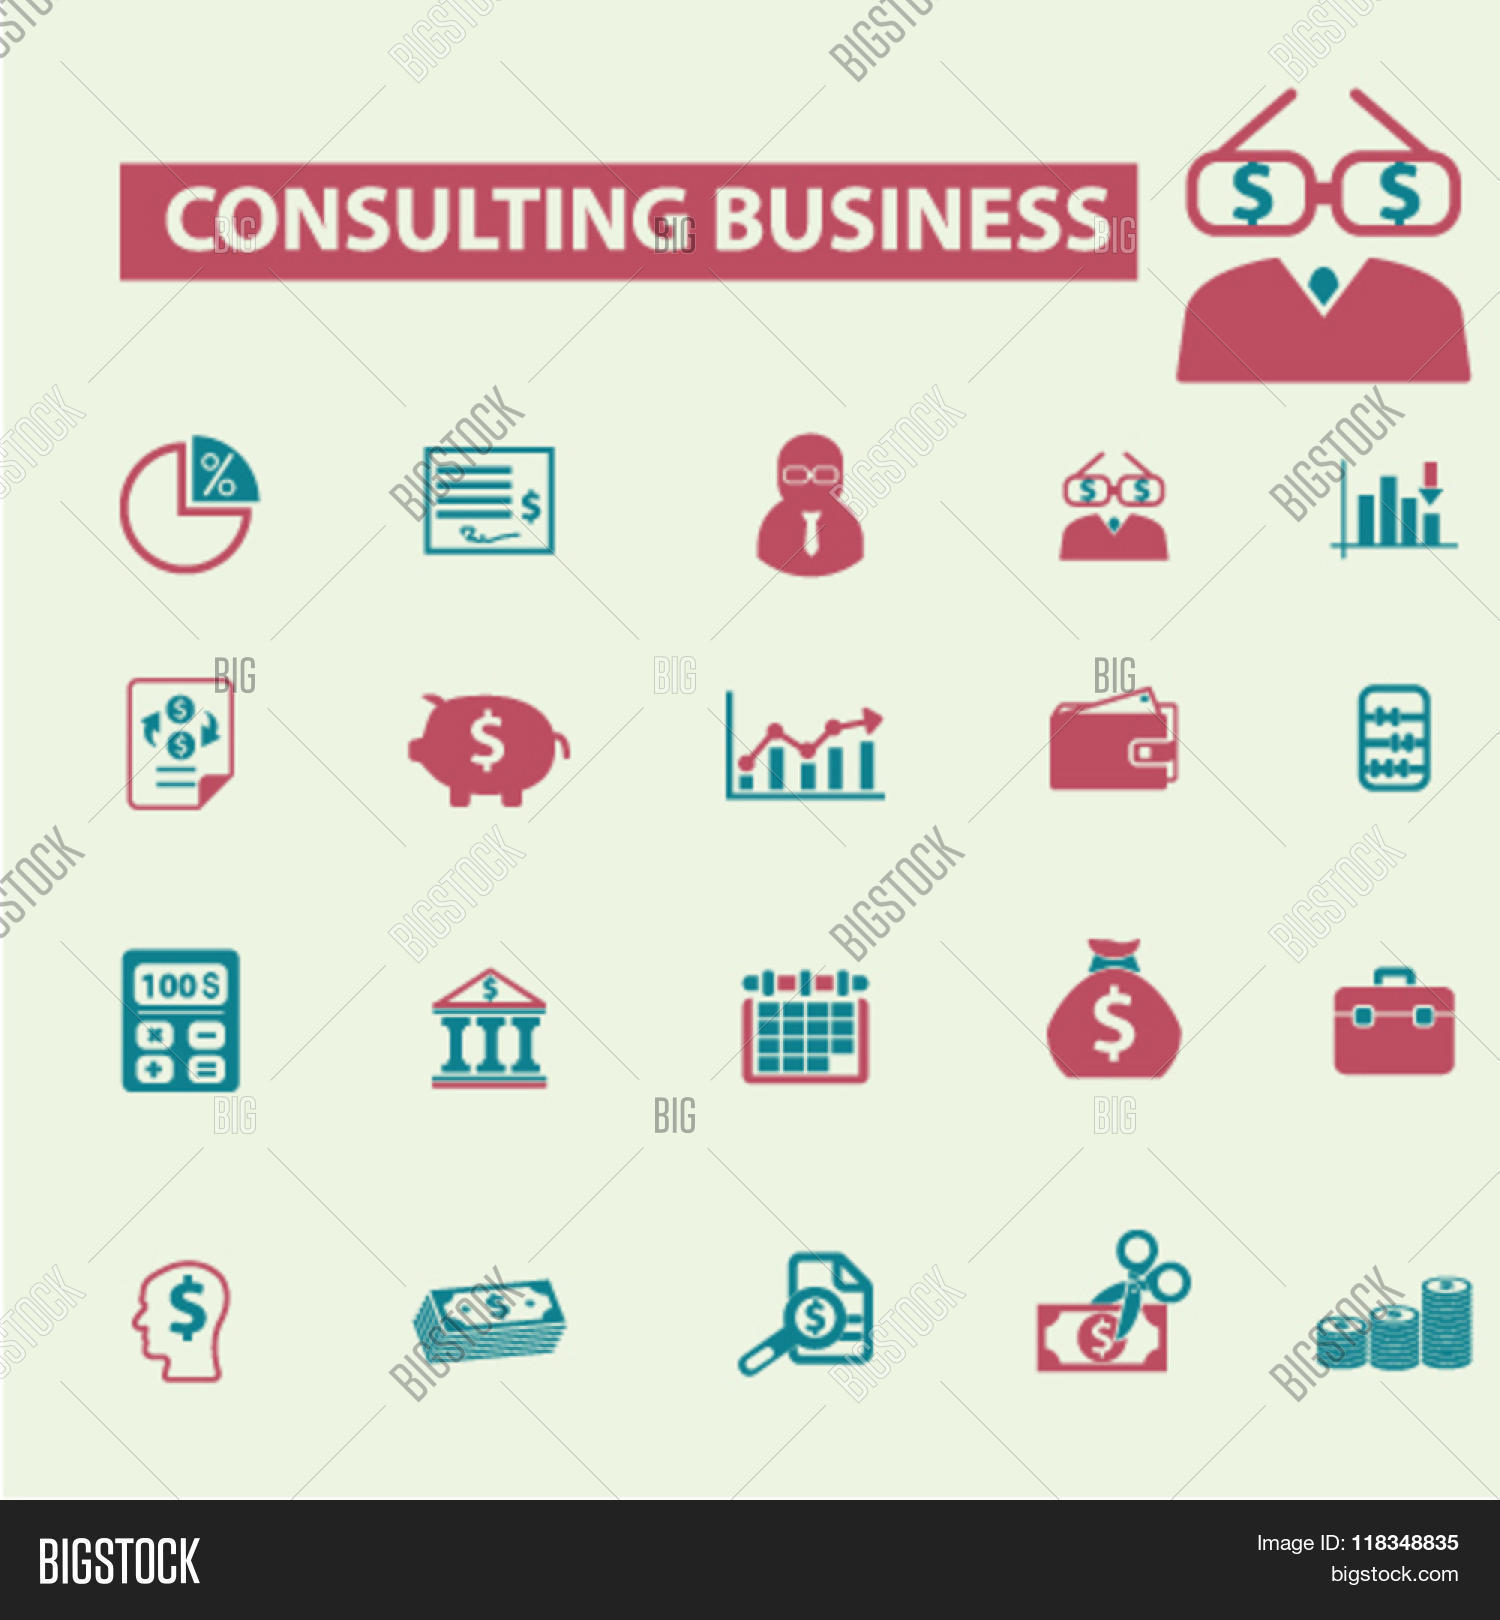 Business consulting icon images for Consulting company logo